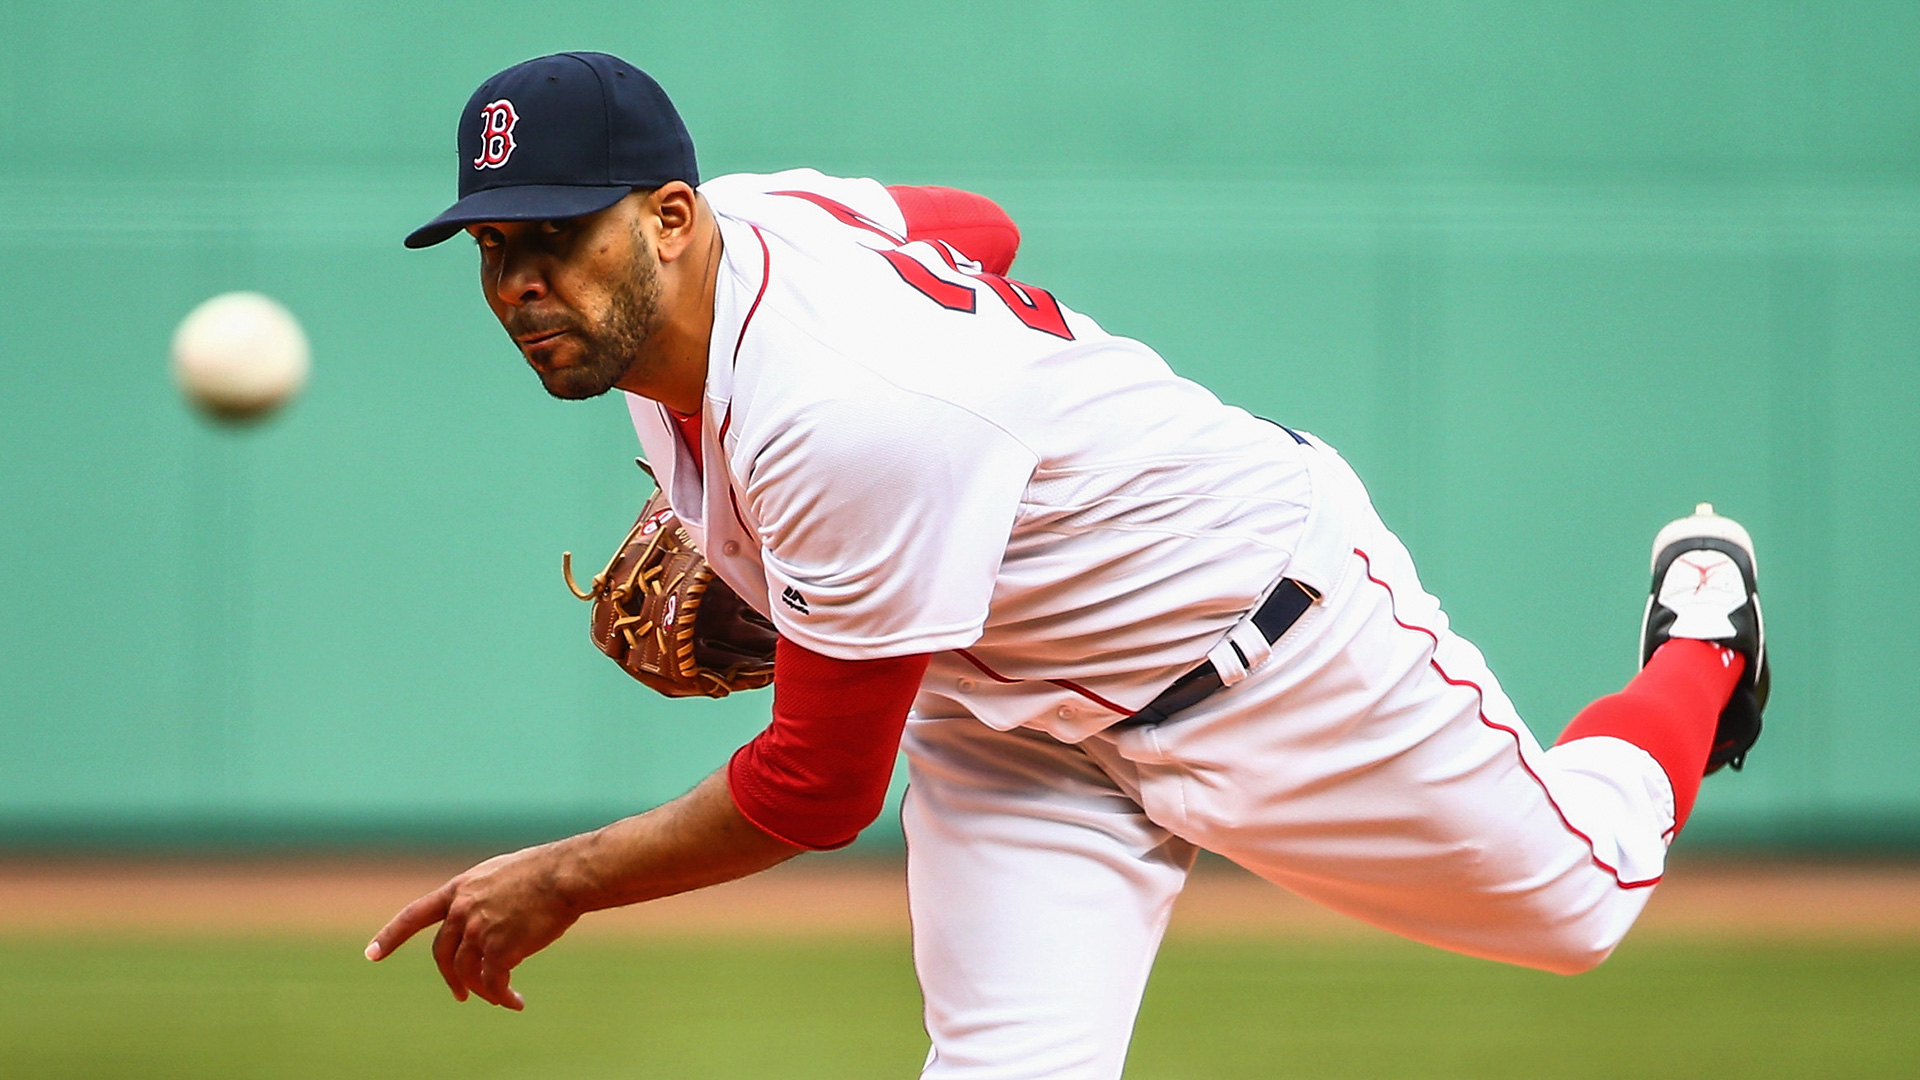 3-david-price-041216-getty-ftrjpg_ircns5xiiyij1993hpt64tl6w